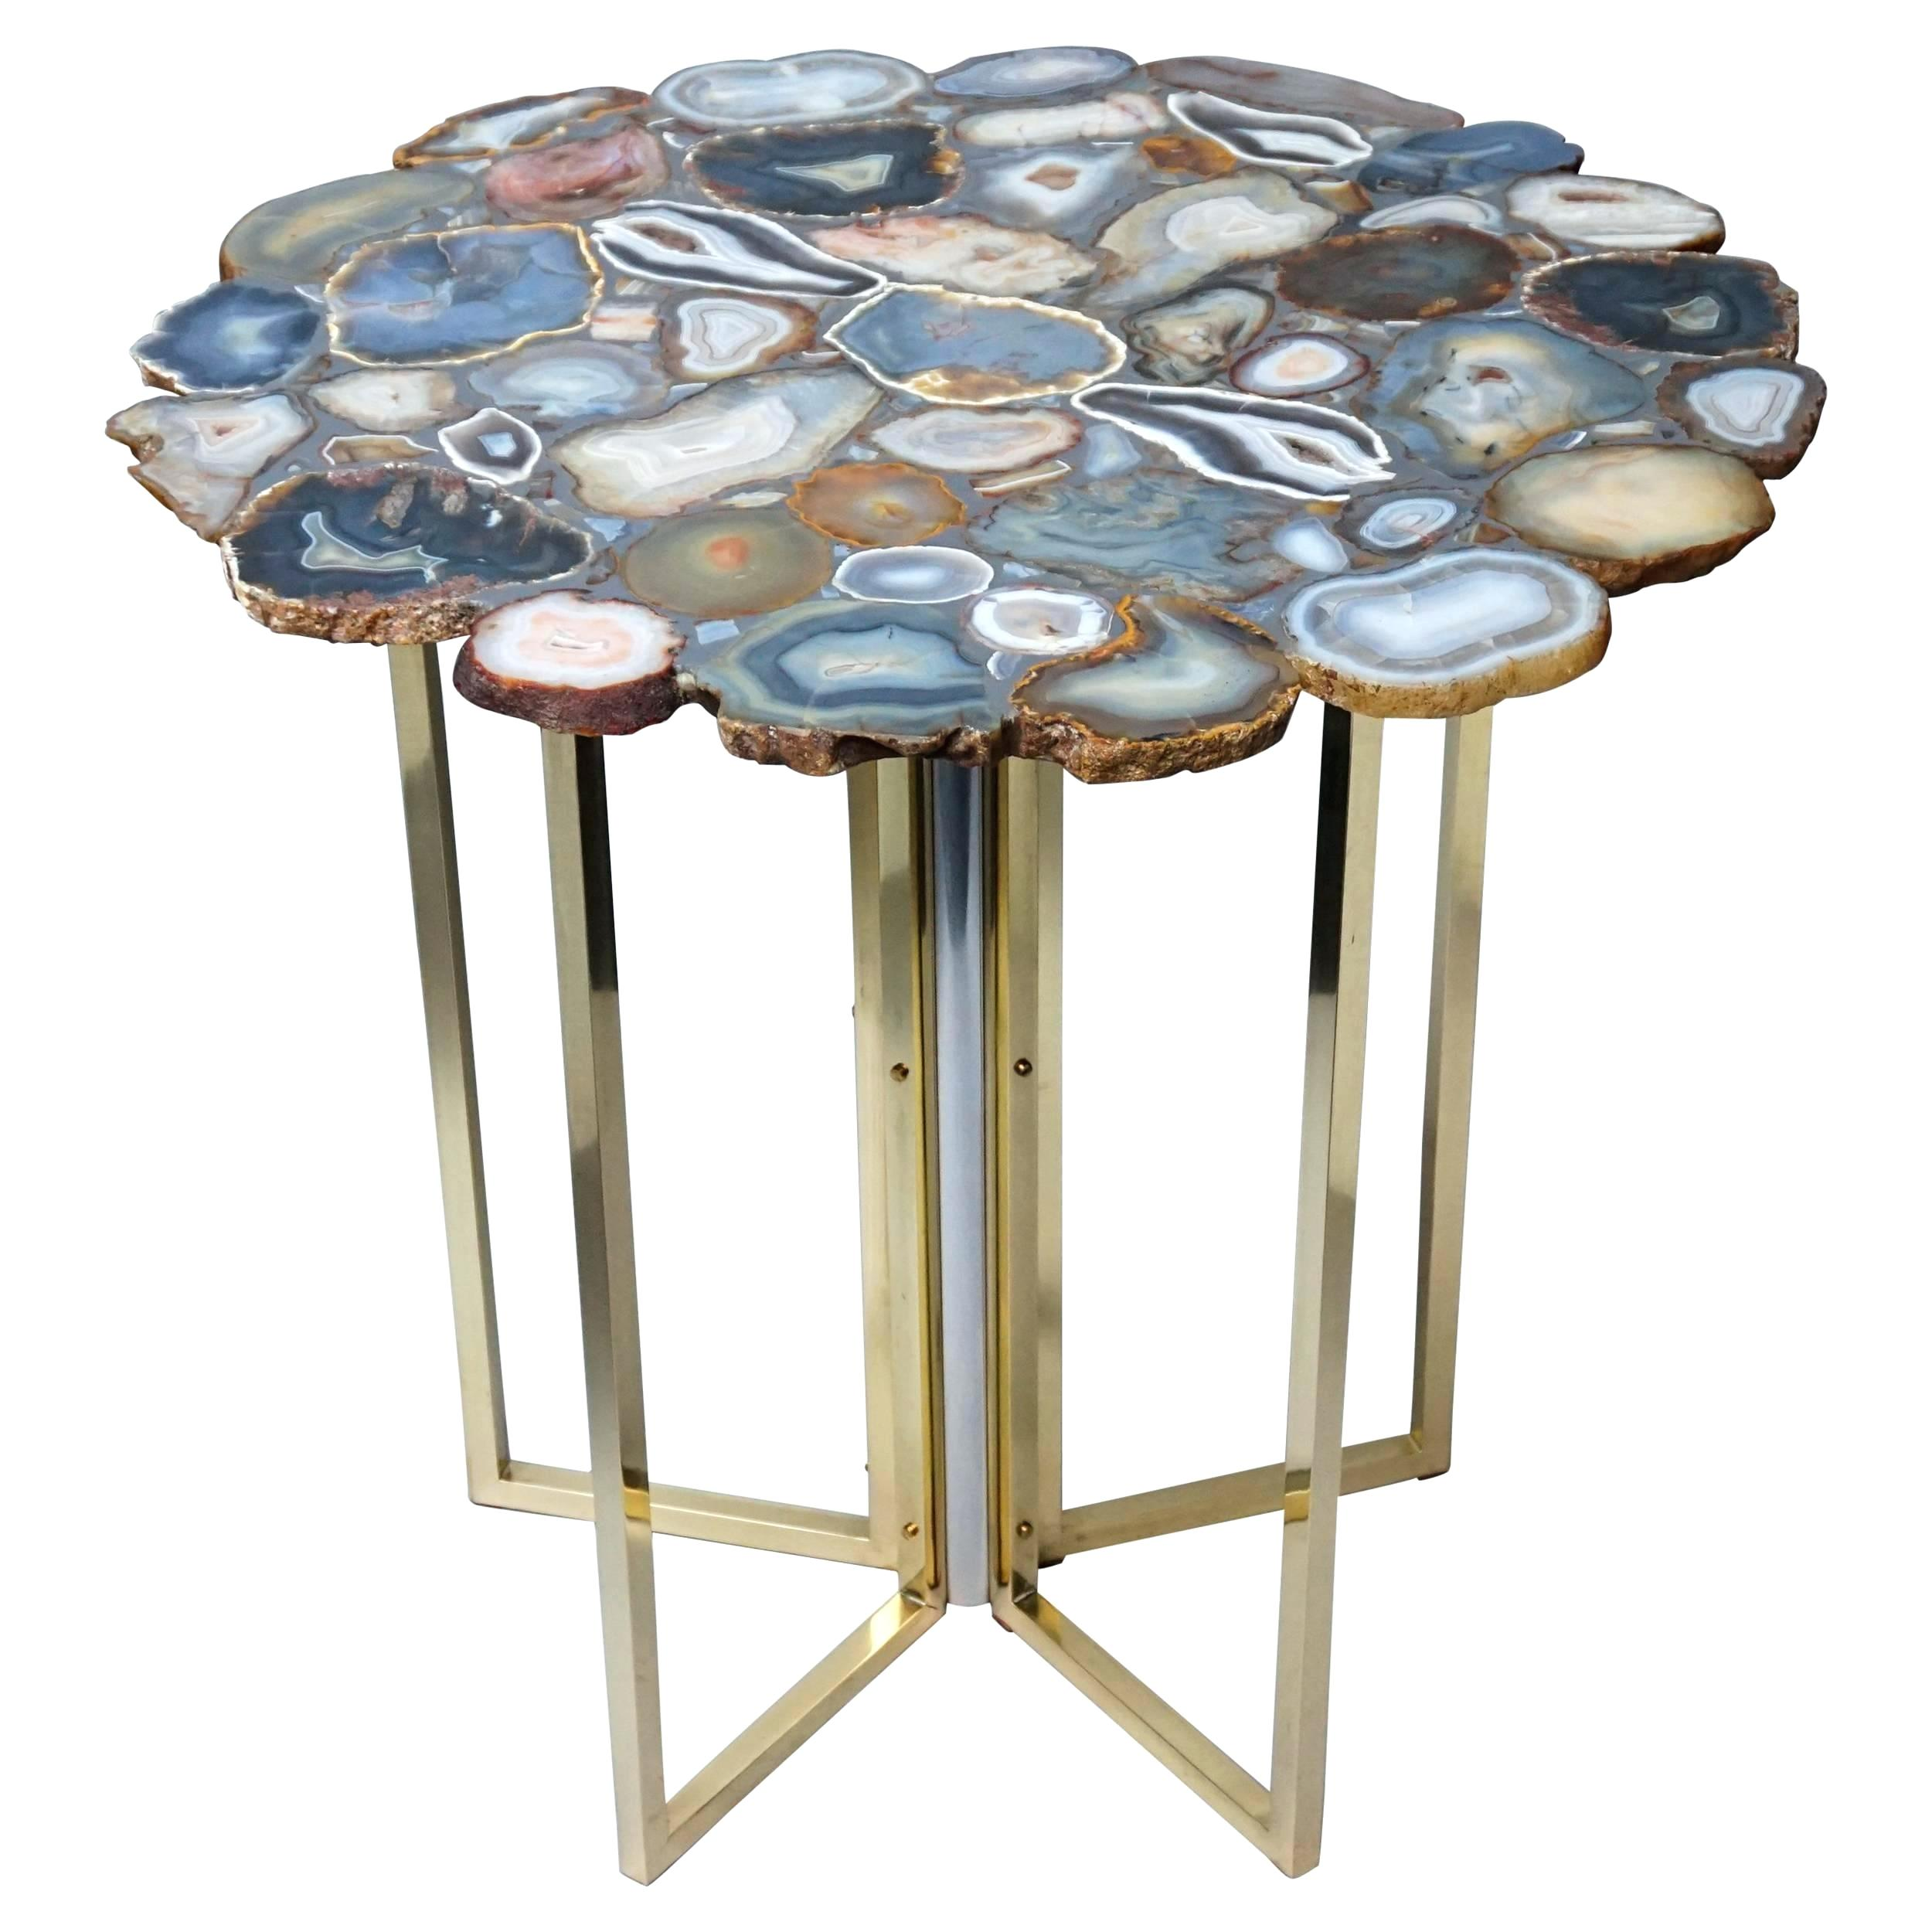 agate side table bidadari info vintage top brass and chrome legs for target accent uttermost dice red small deck furniture coffee designs affordable leather sofa farm style end